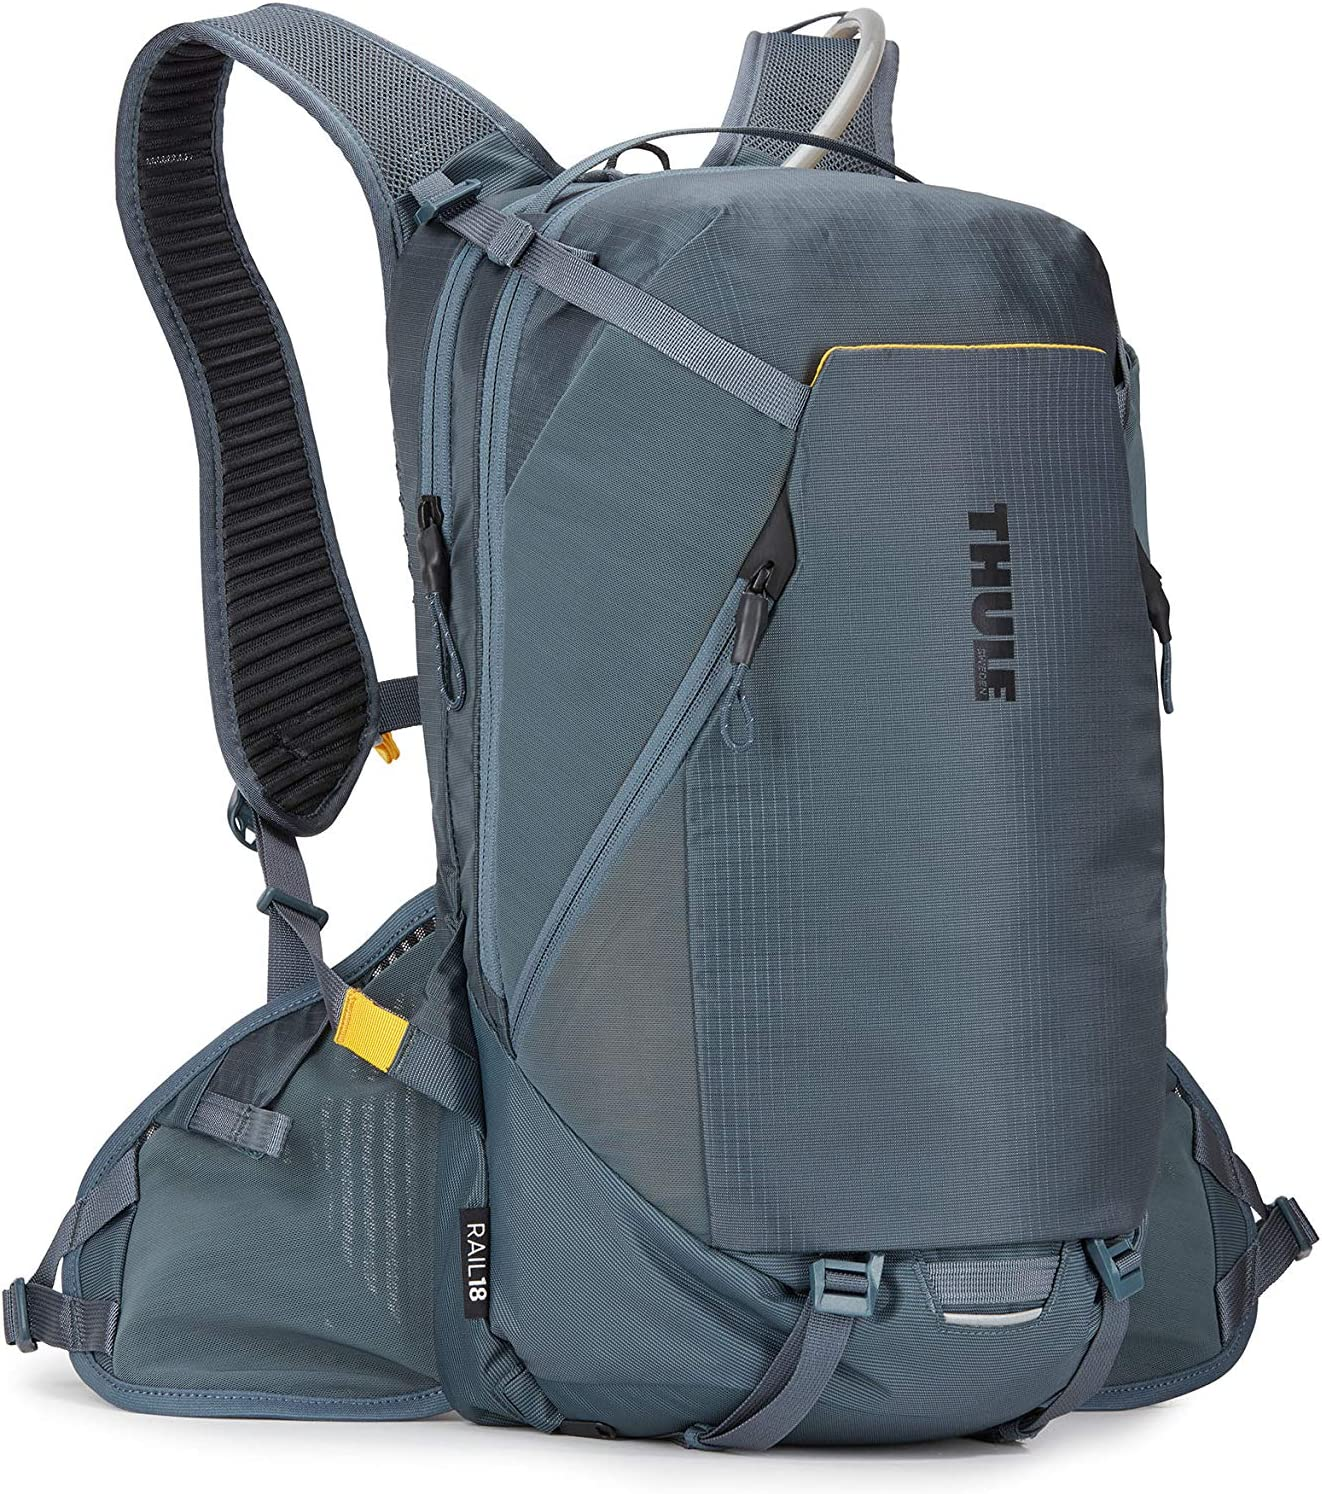 Thule Challenge the lowest price of Japan ☆ Rail Backpack Super-cheap Slate 18L Dark